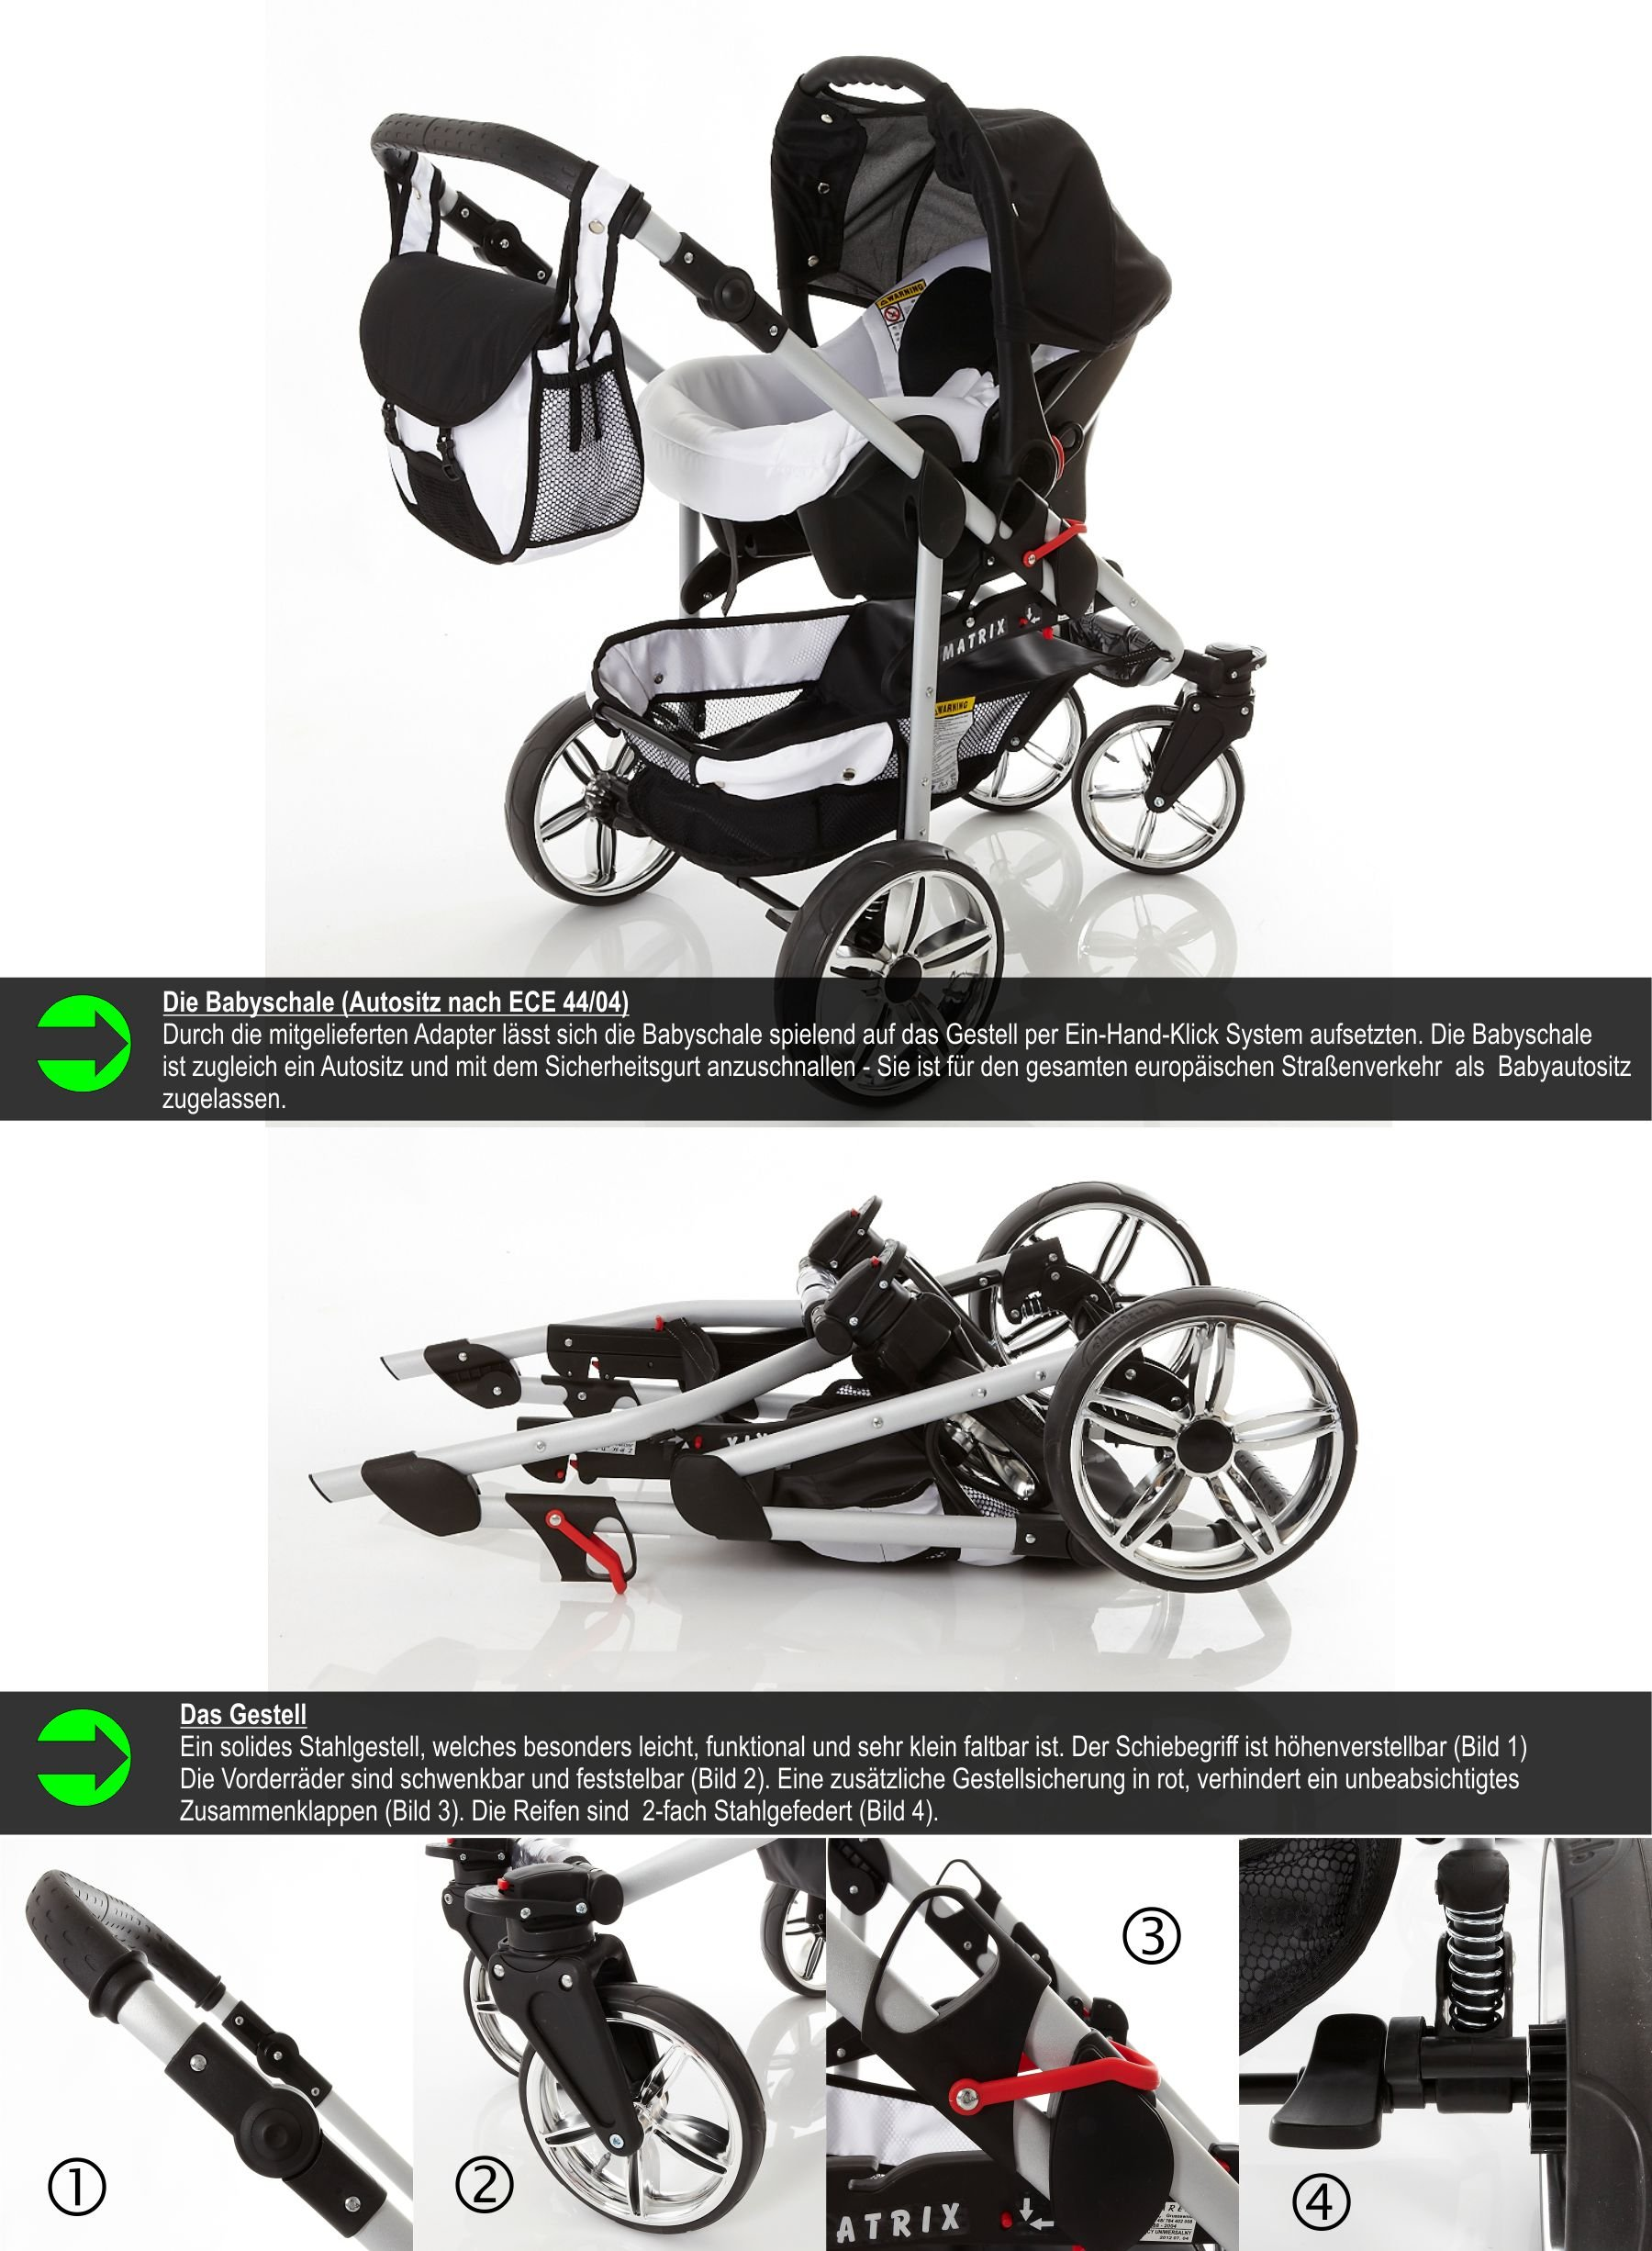 Chilly Kids Matrix II Pram & Pushchair Travel System (car seat & adapter, raincover, mosquito net, swivel wheels) 59 White & Leopard  Stroller with accessories all included 3 free items More information on www.youtube.com/Lux4Kids Sturdy steel construction, height-adjustable handlebars, adjustable hood hood, converts into a stroller and many pl Made in the EU (DIN EN1888/2005) 5